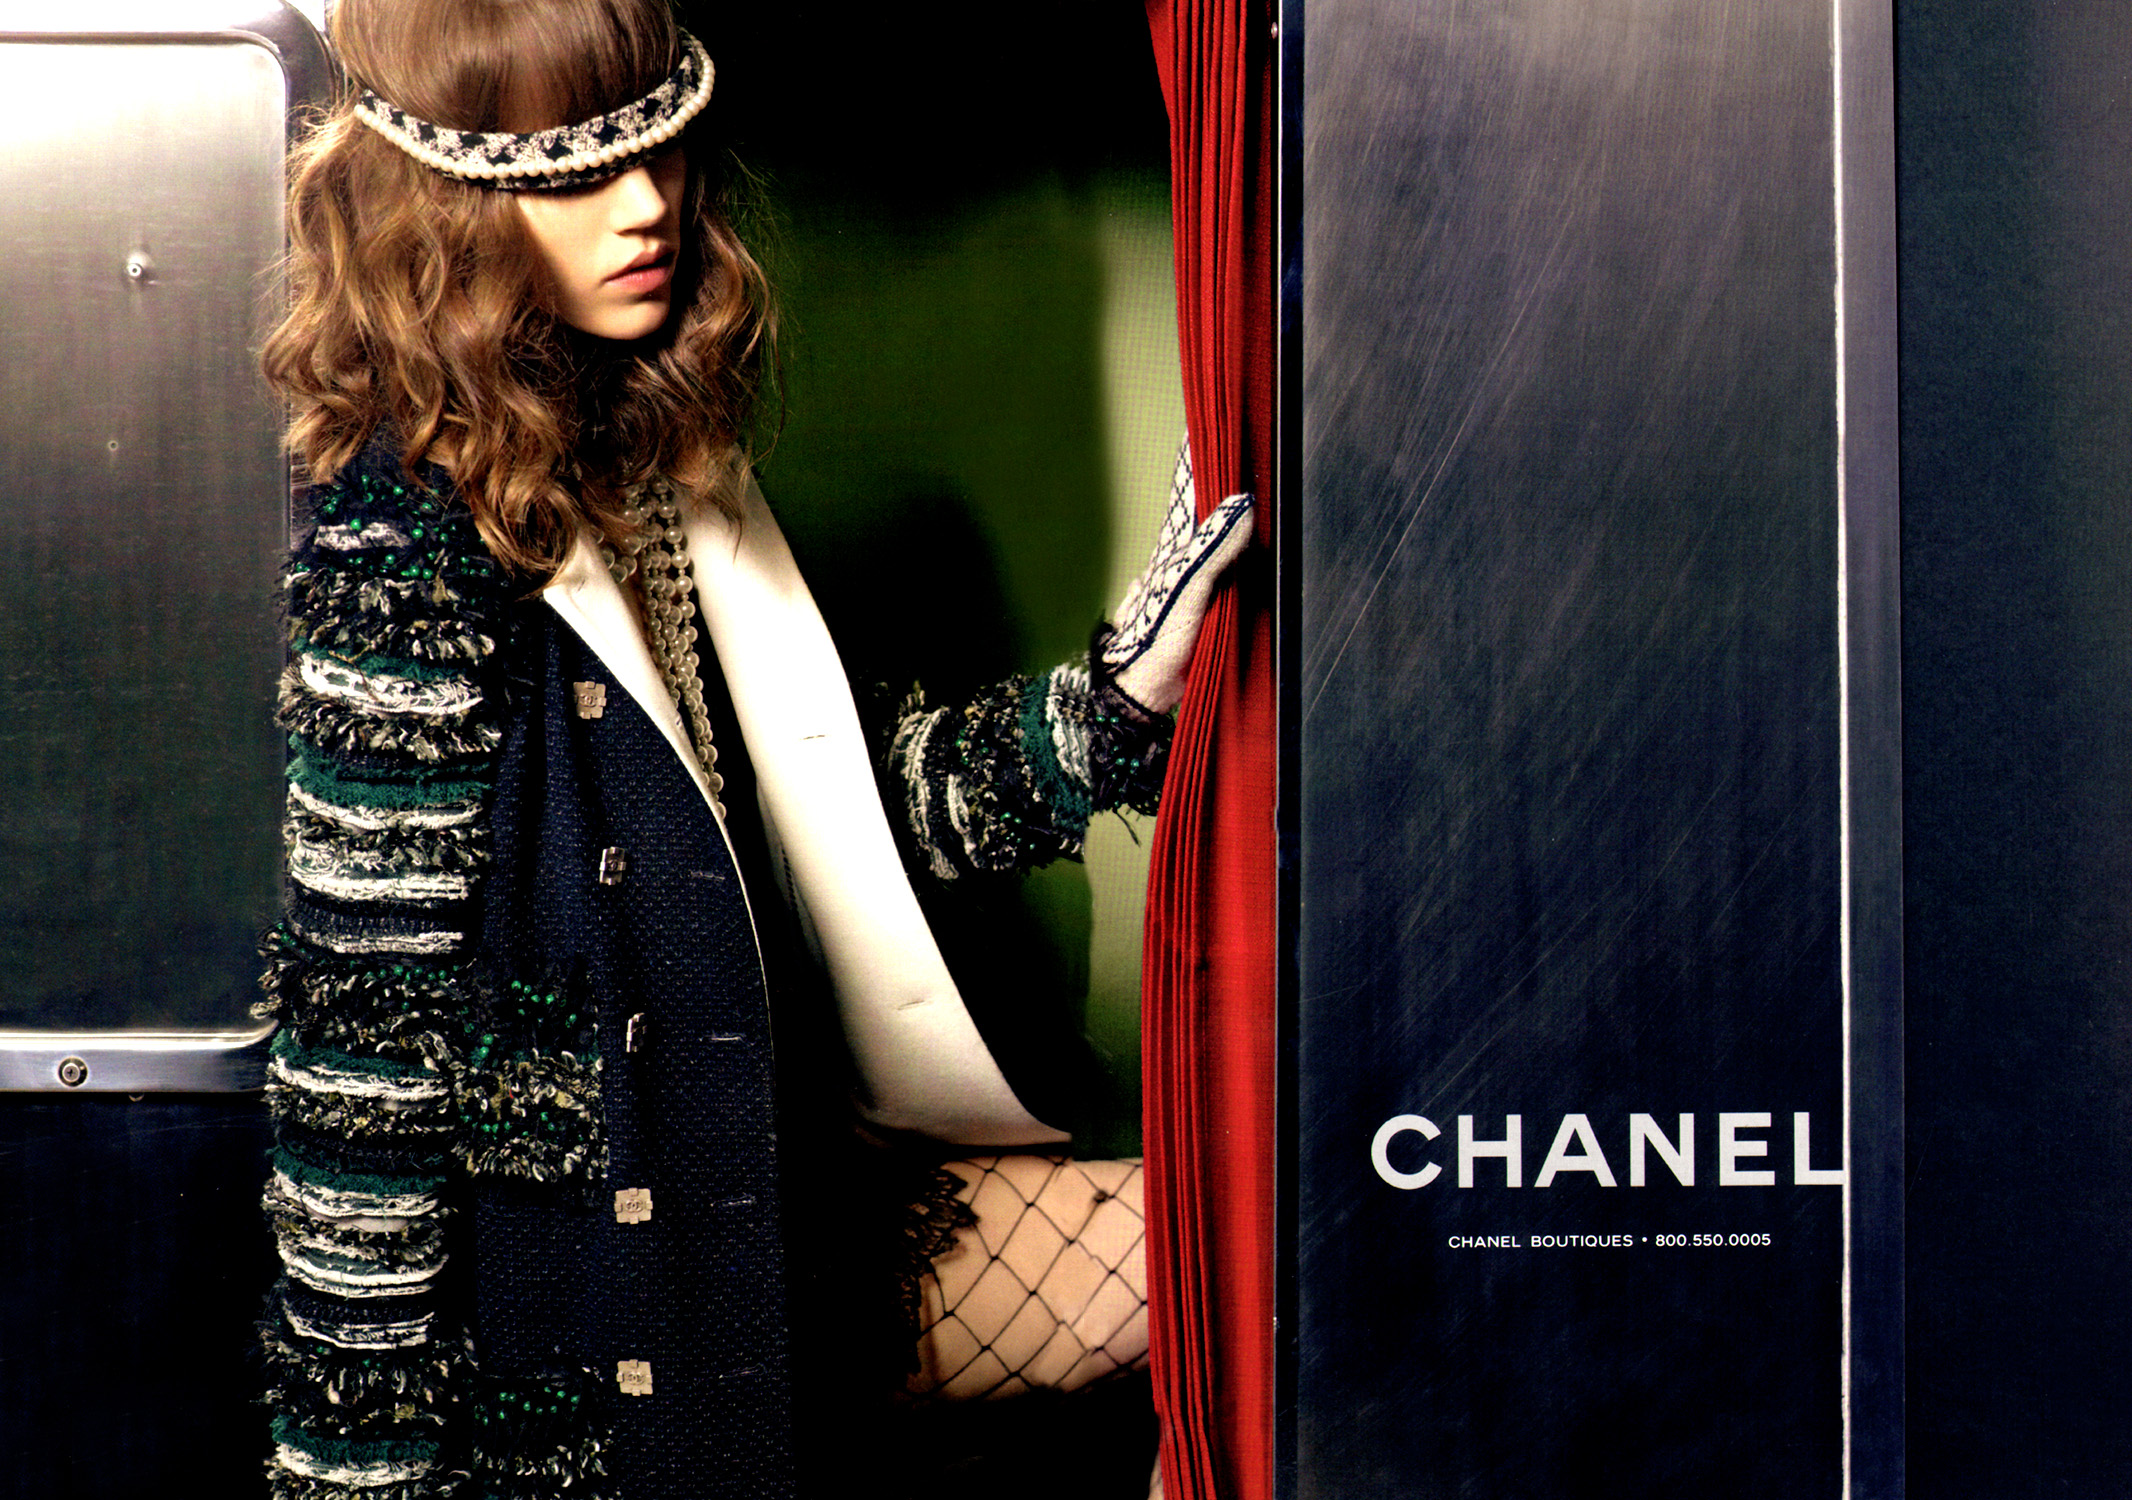 Chanel Cruise 2011 Ad Campaign images